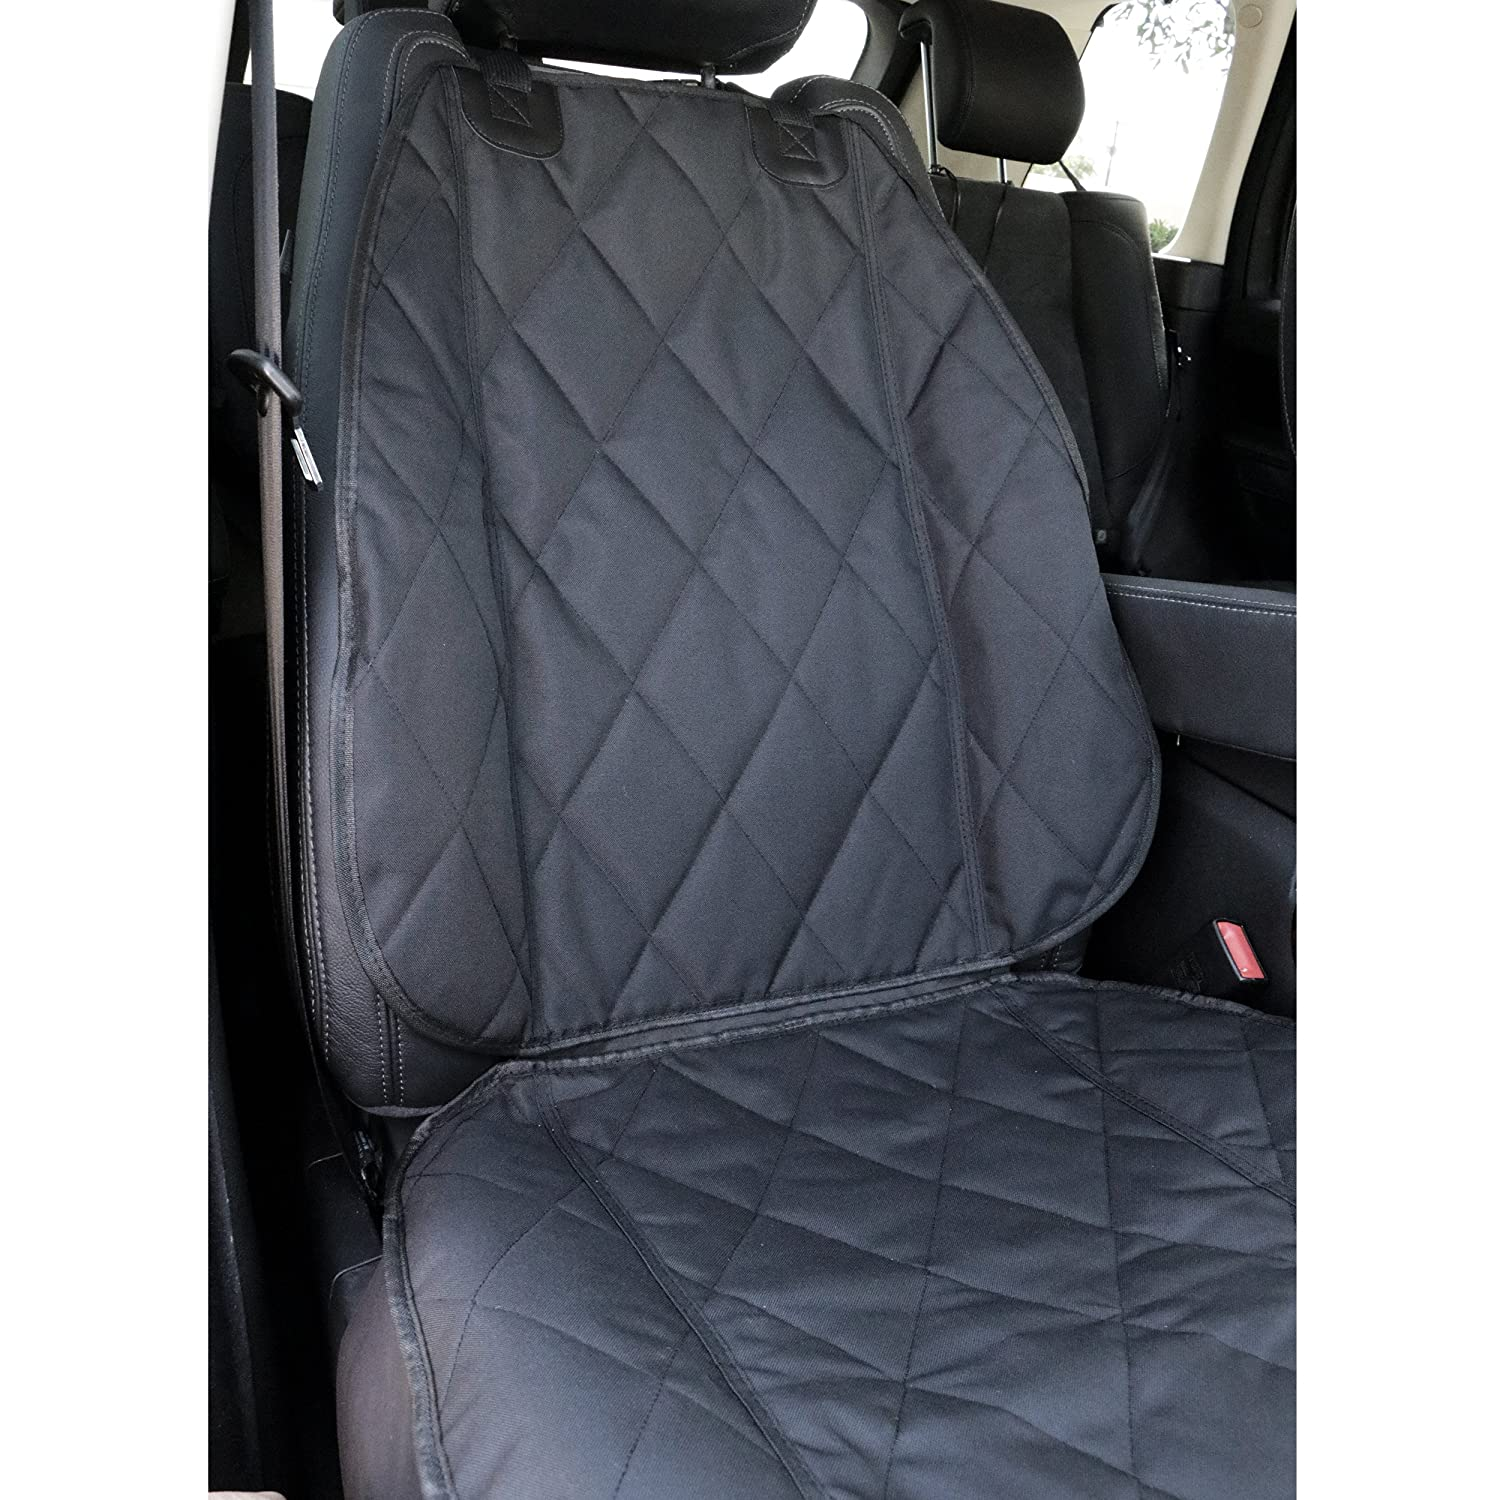 Amazon.com : BarksBar Pet Front Seat Cover for Cars - Black ...